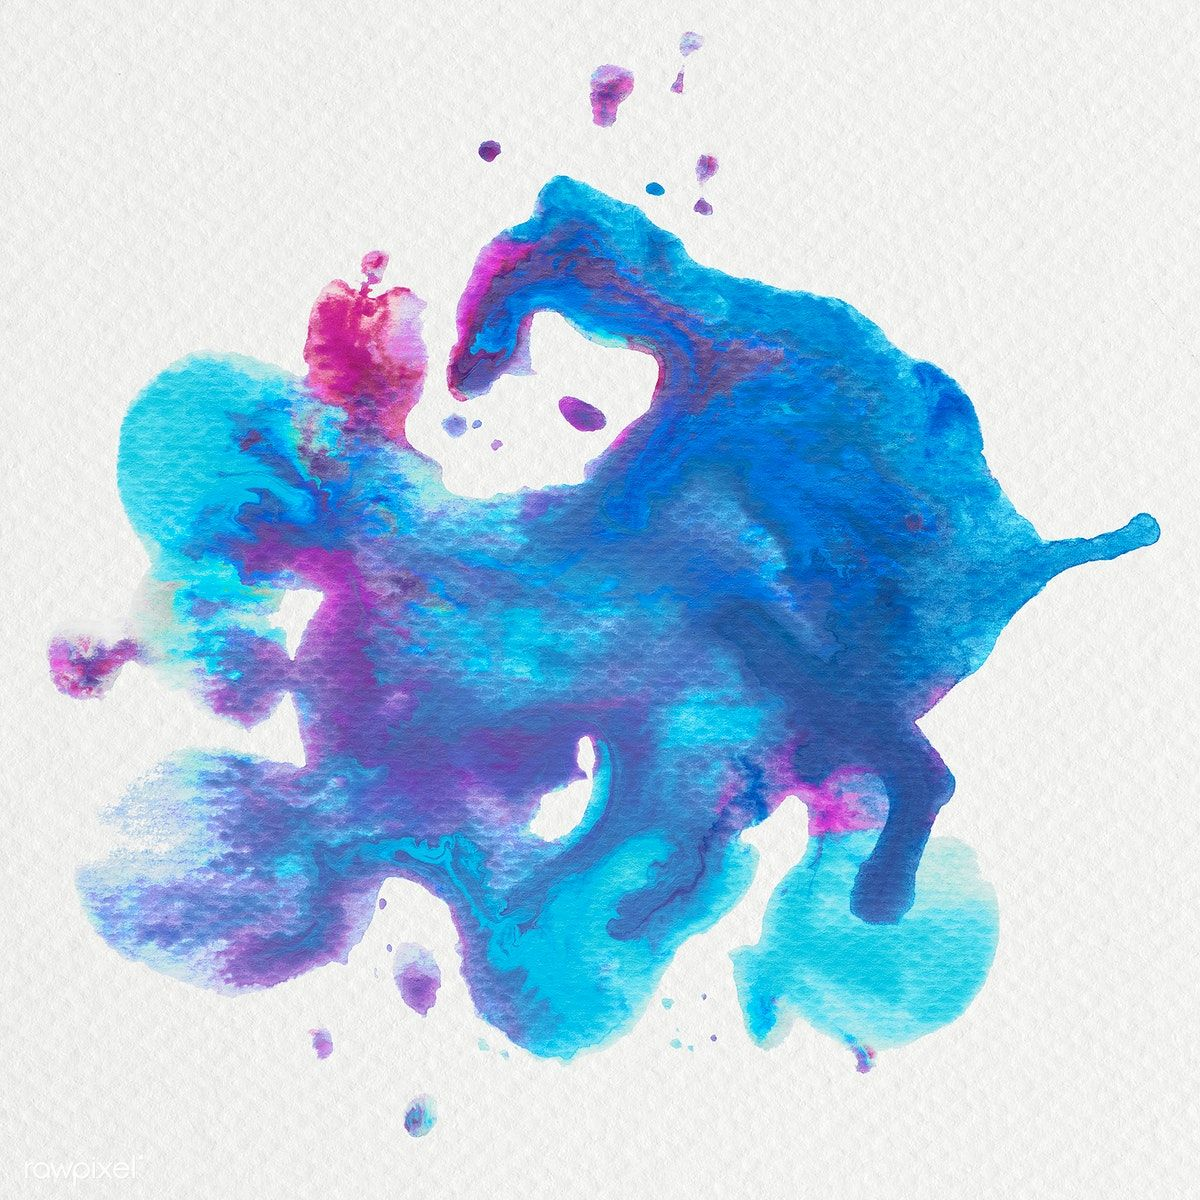 Abstract Blue And Pink Watercolor Splash Illustration Free Image